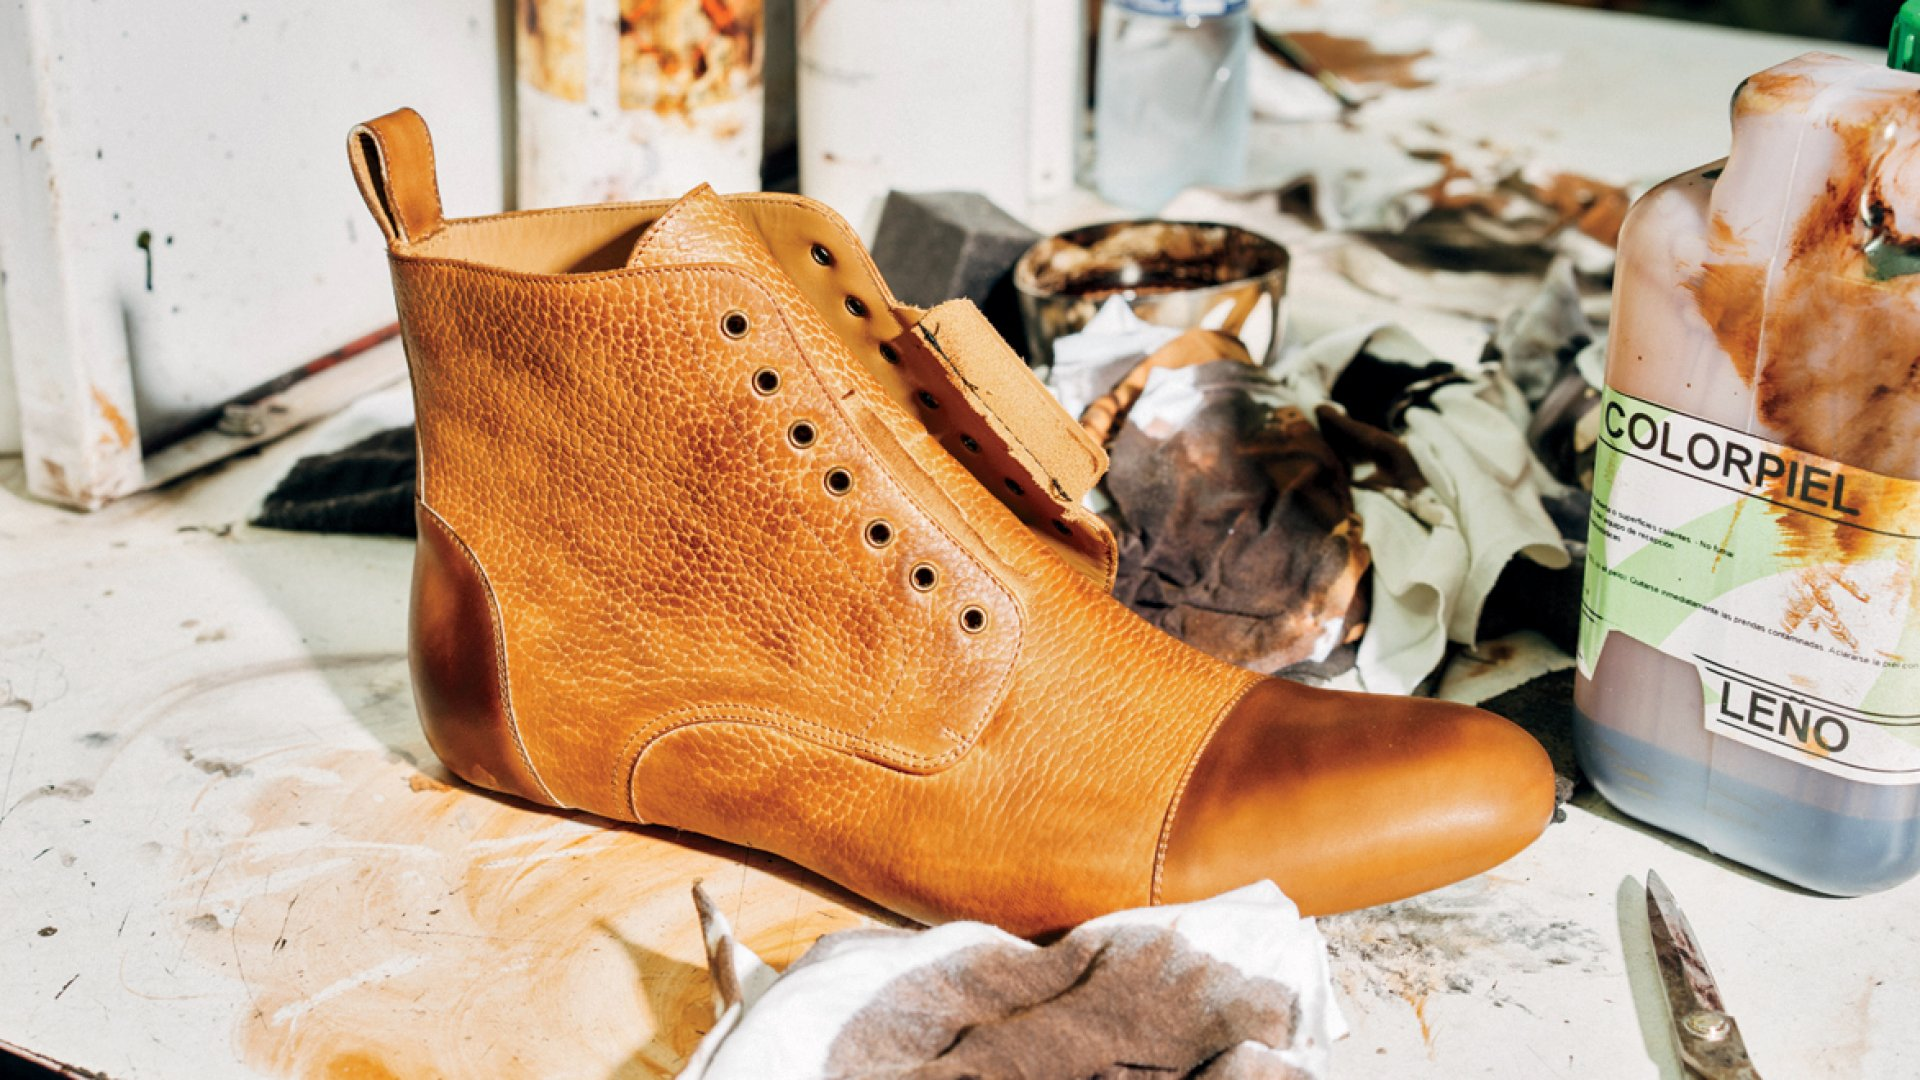 After partial assembly, each Taft boot is hand dyed and painted. The company says it uses only vegetable-tanned, chromium-free, full-grain leathers.